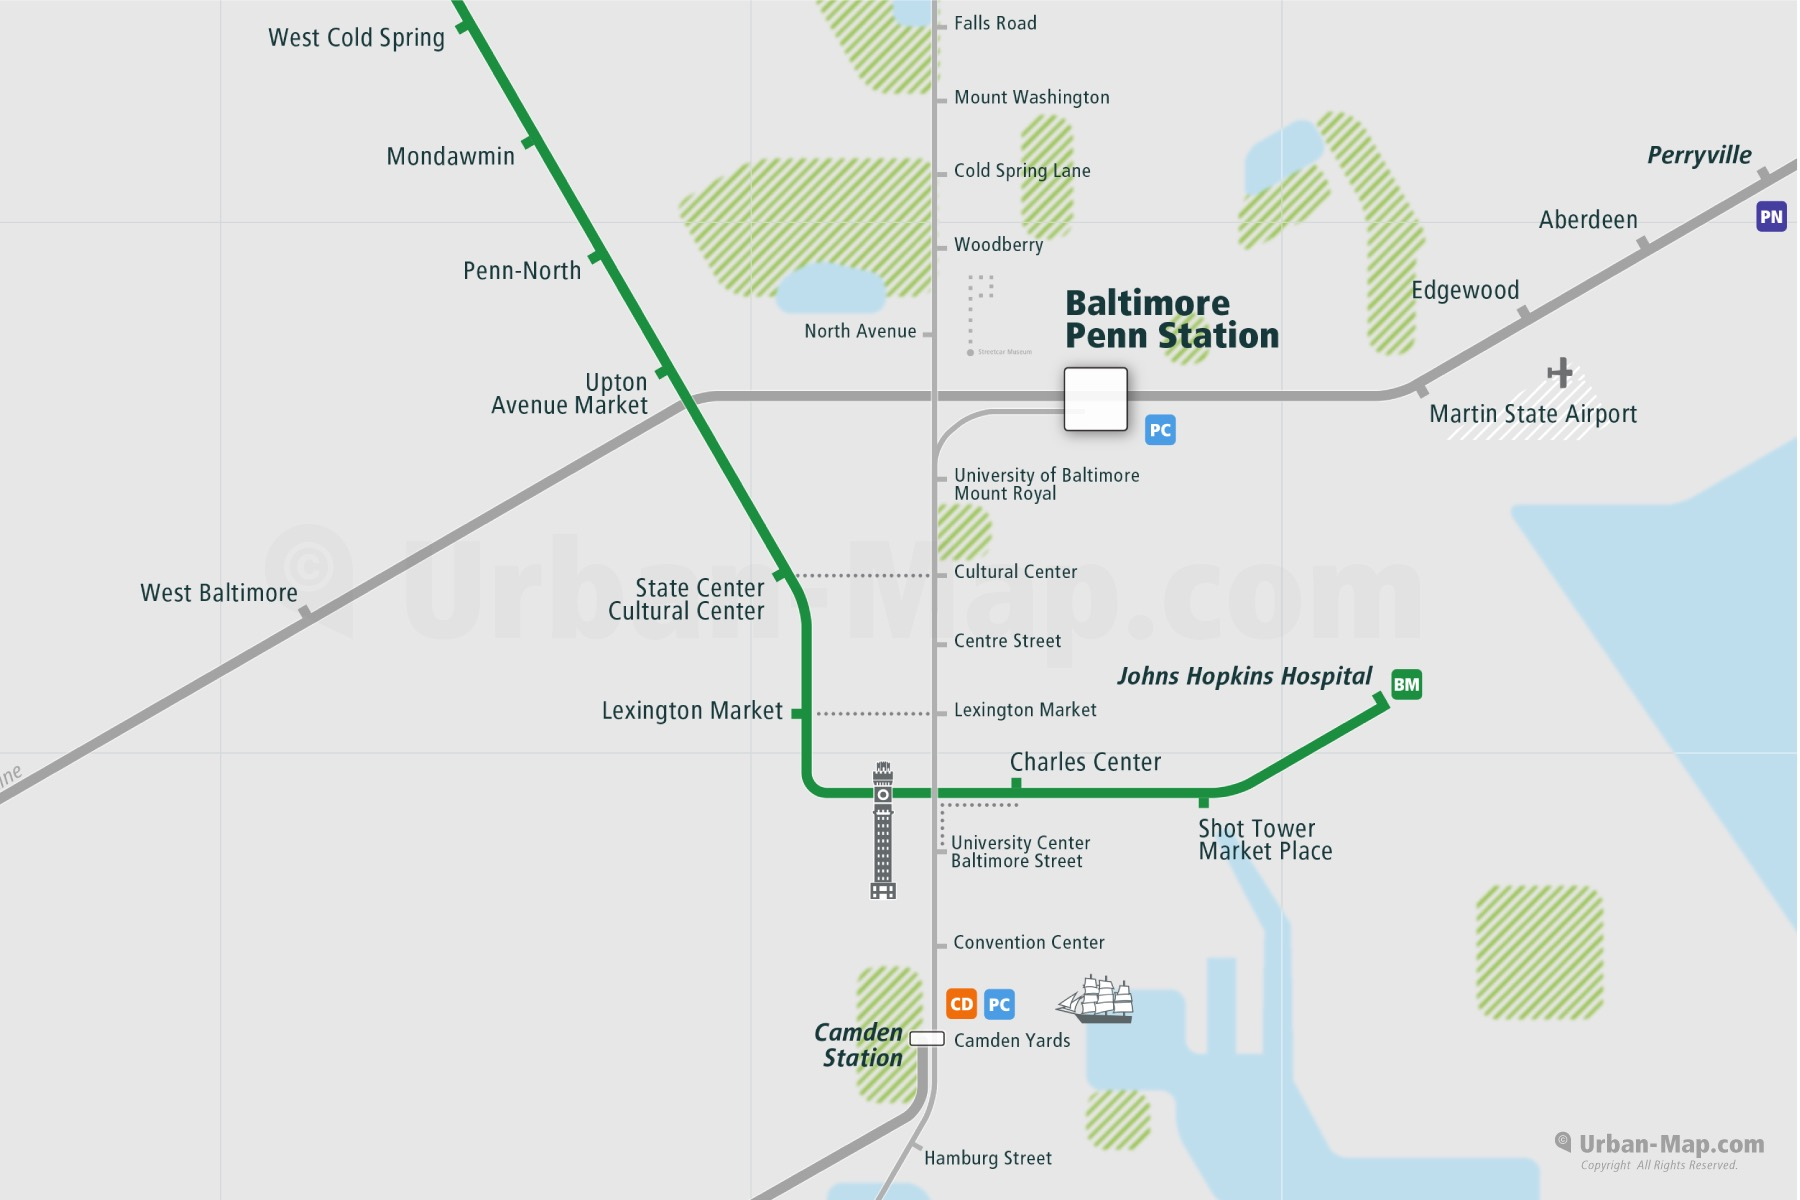 Baltimore City Rail Map shows the train and public transportation routes of Metro, Street Car - Close-Up